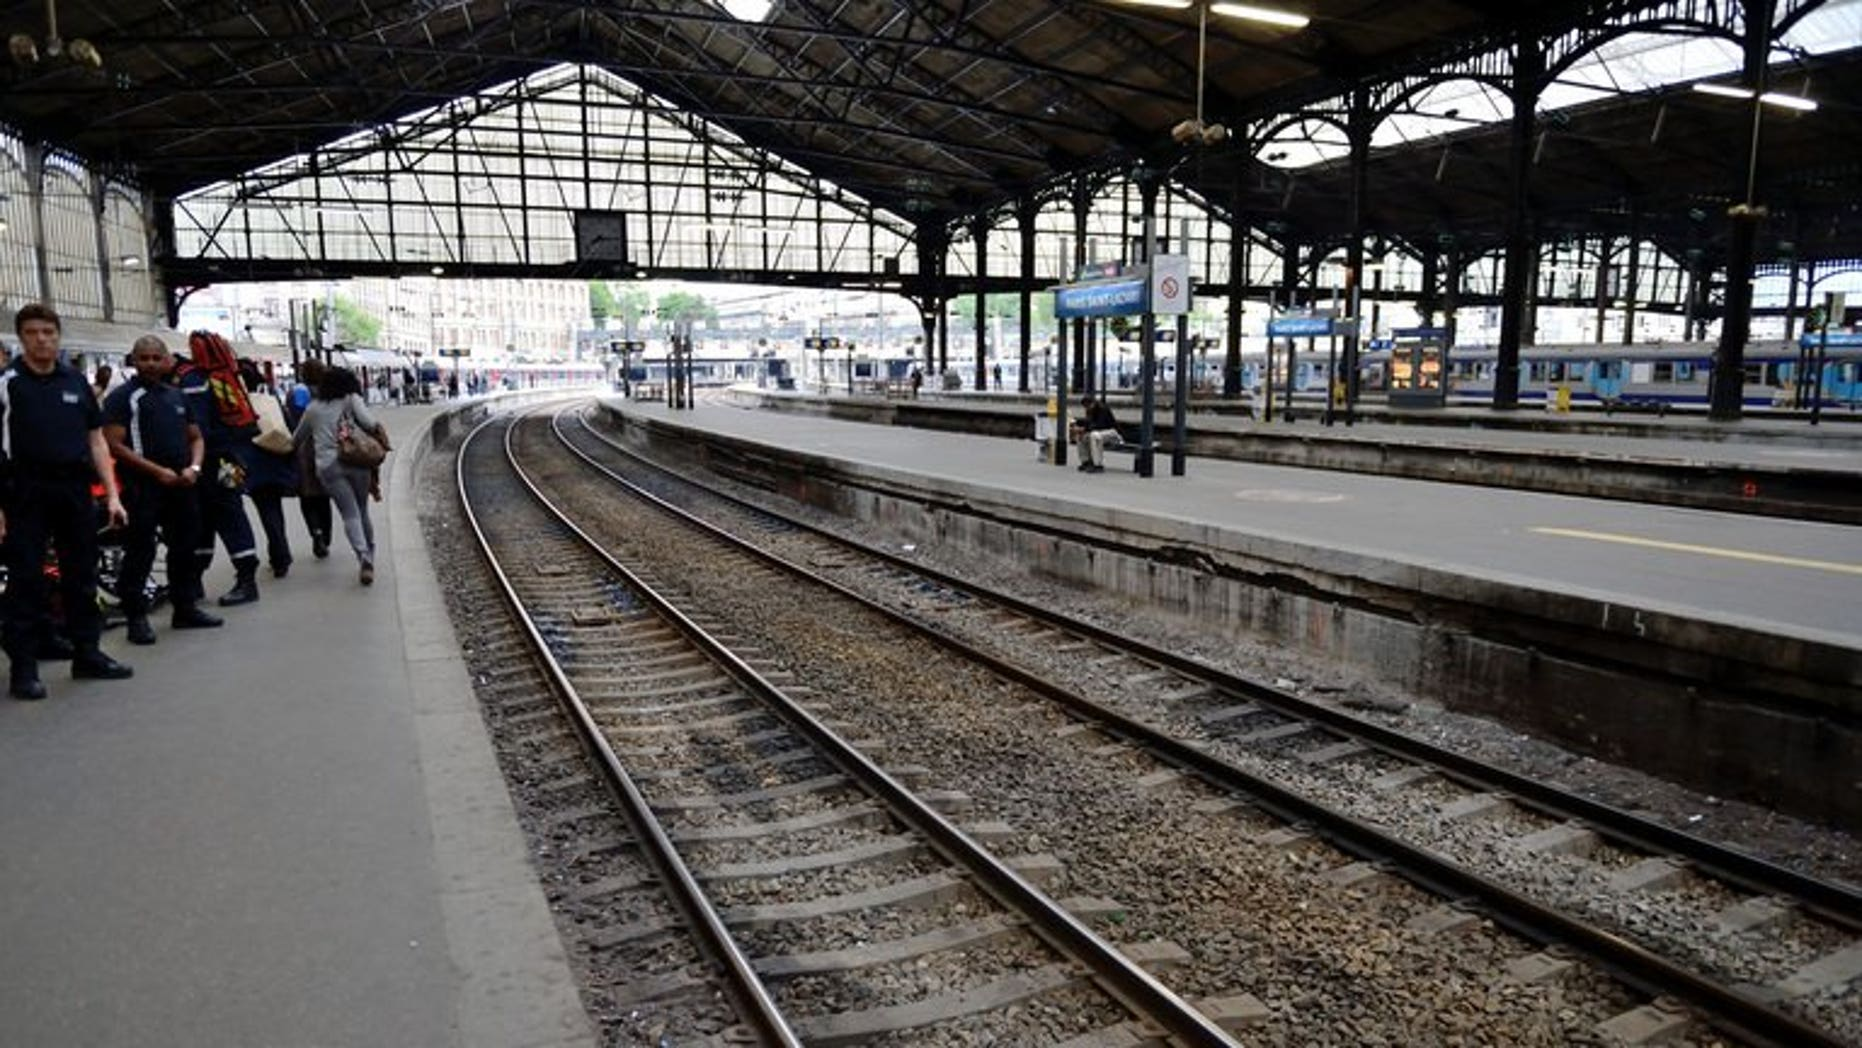 """A view of empty tracks at the Saint Lazare train station in Paris on June 13, 2013. A train derailed in the Paris suburb of Bretigny-sur-Orge in an accident that authorities fear may have caused """"many casualties"""", officials said."""